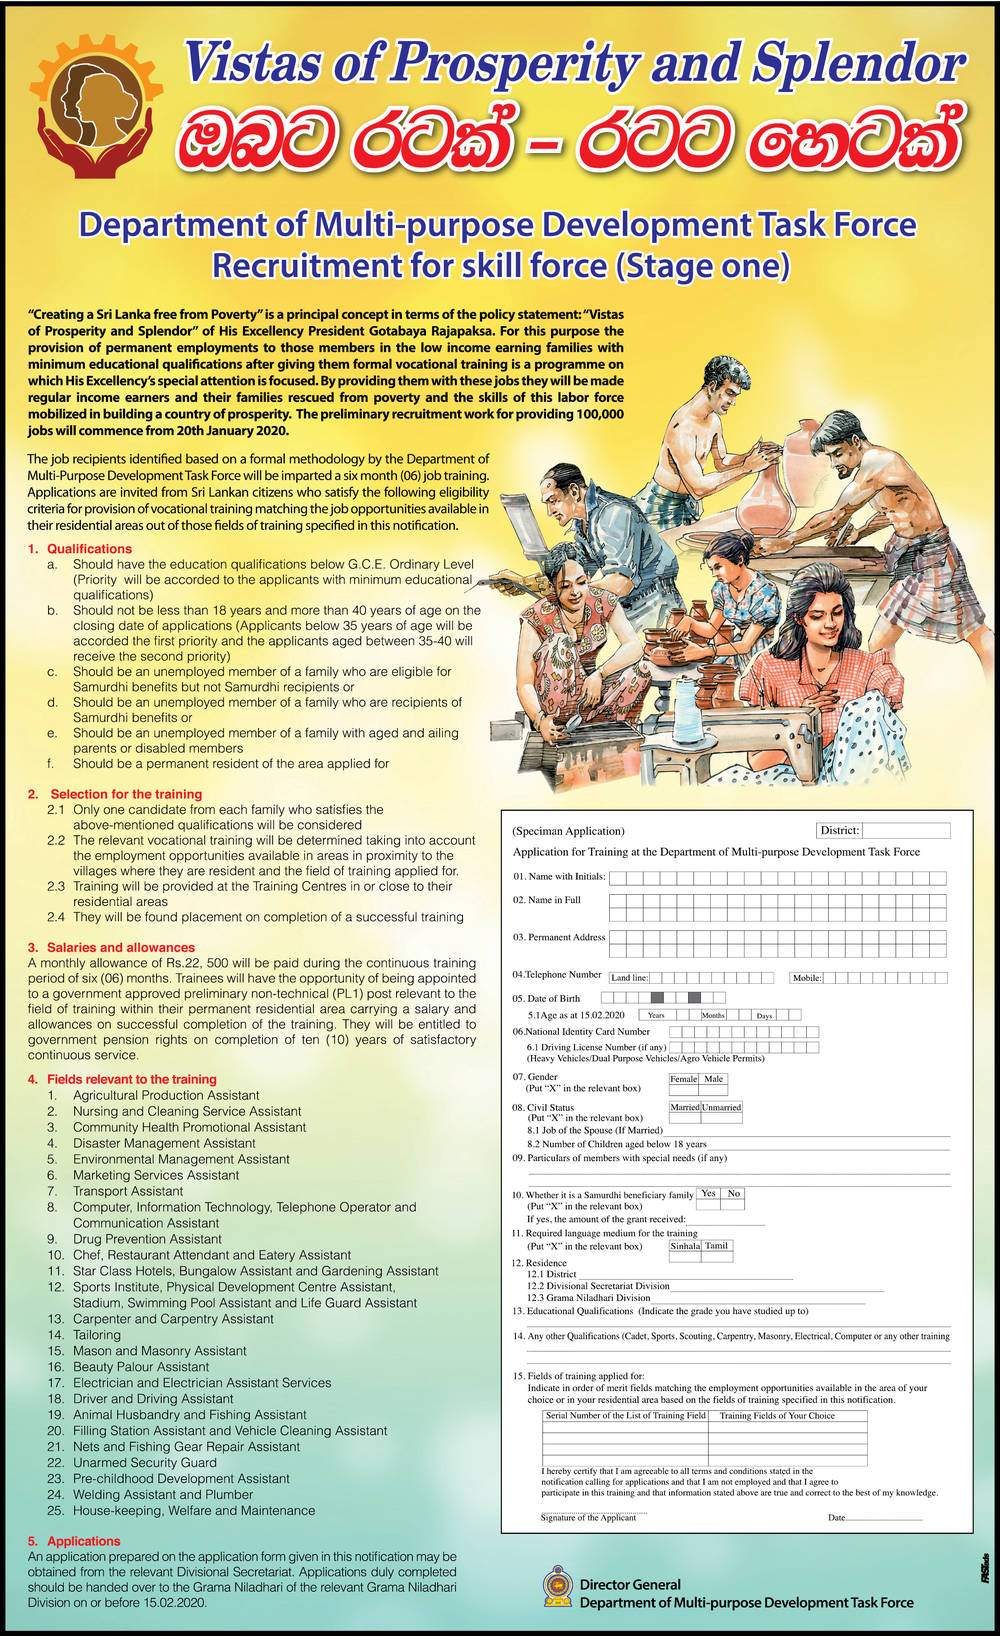 Recruitment for Skill Force (Stage One) - Department of Multi-Purpose Development Task Force